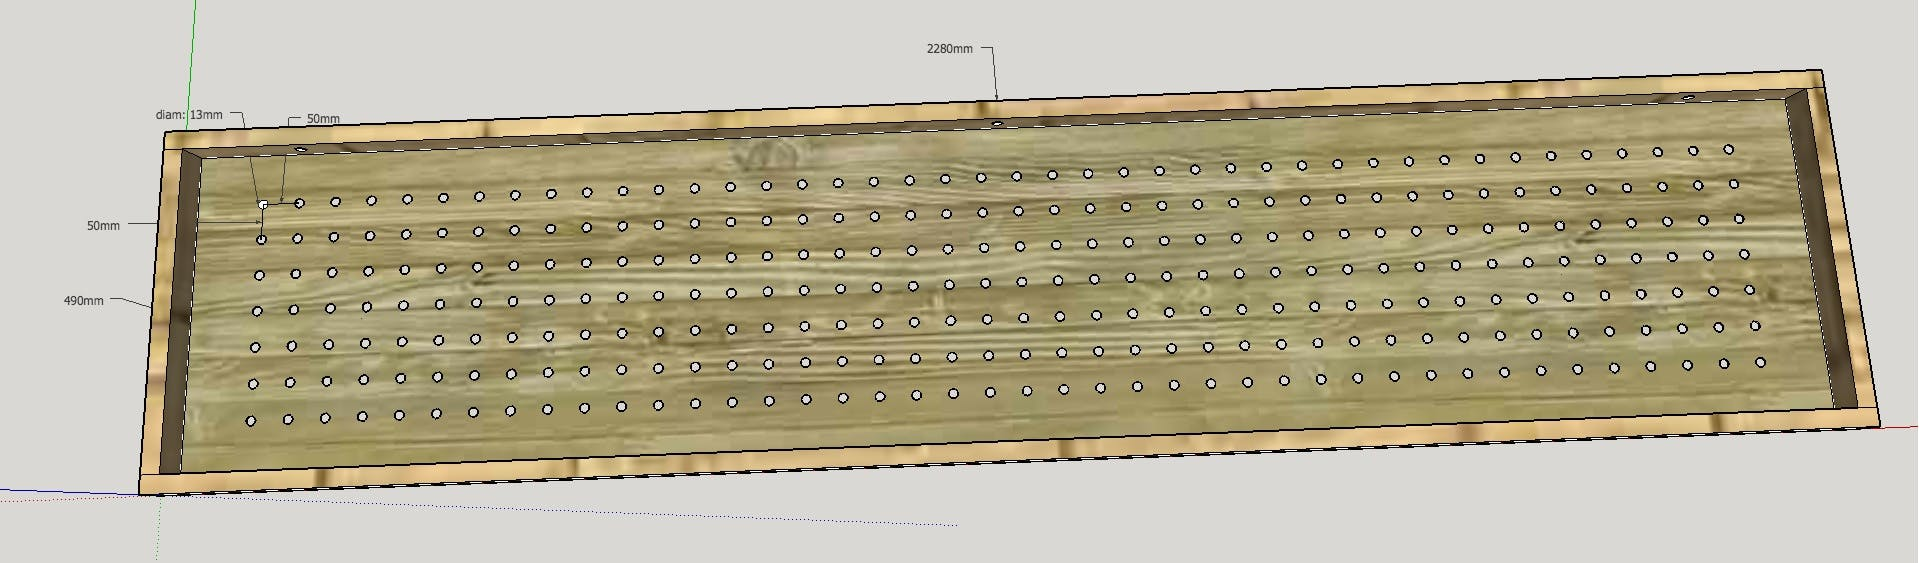 SketchUp model of the rear of the finished product